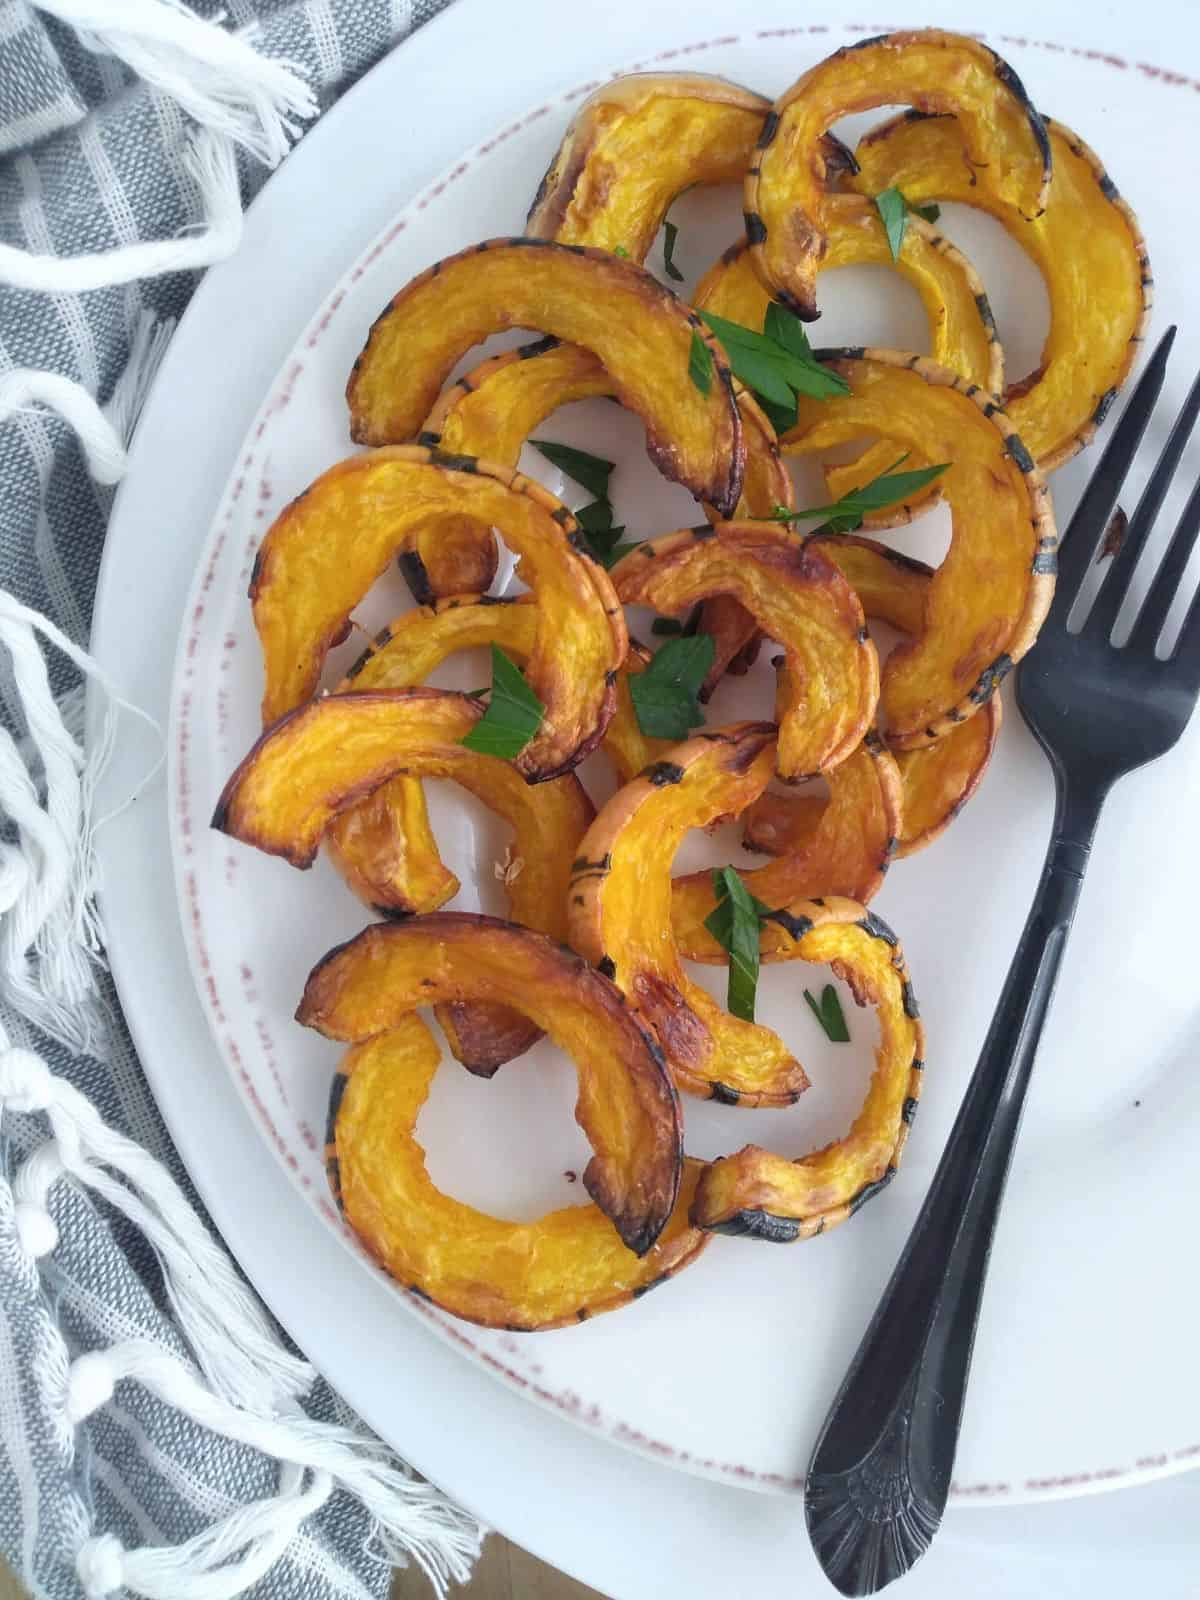 A plate of Roasted Delicata squash pieces with the skin on on top of a larger plate on top of a gray and white striped towel. A black fork is next to the squash.